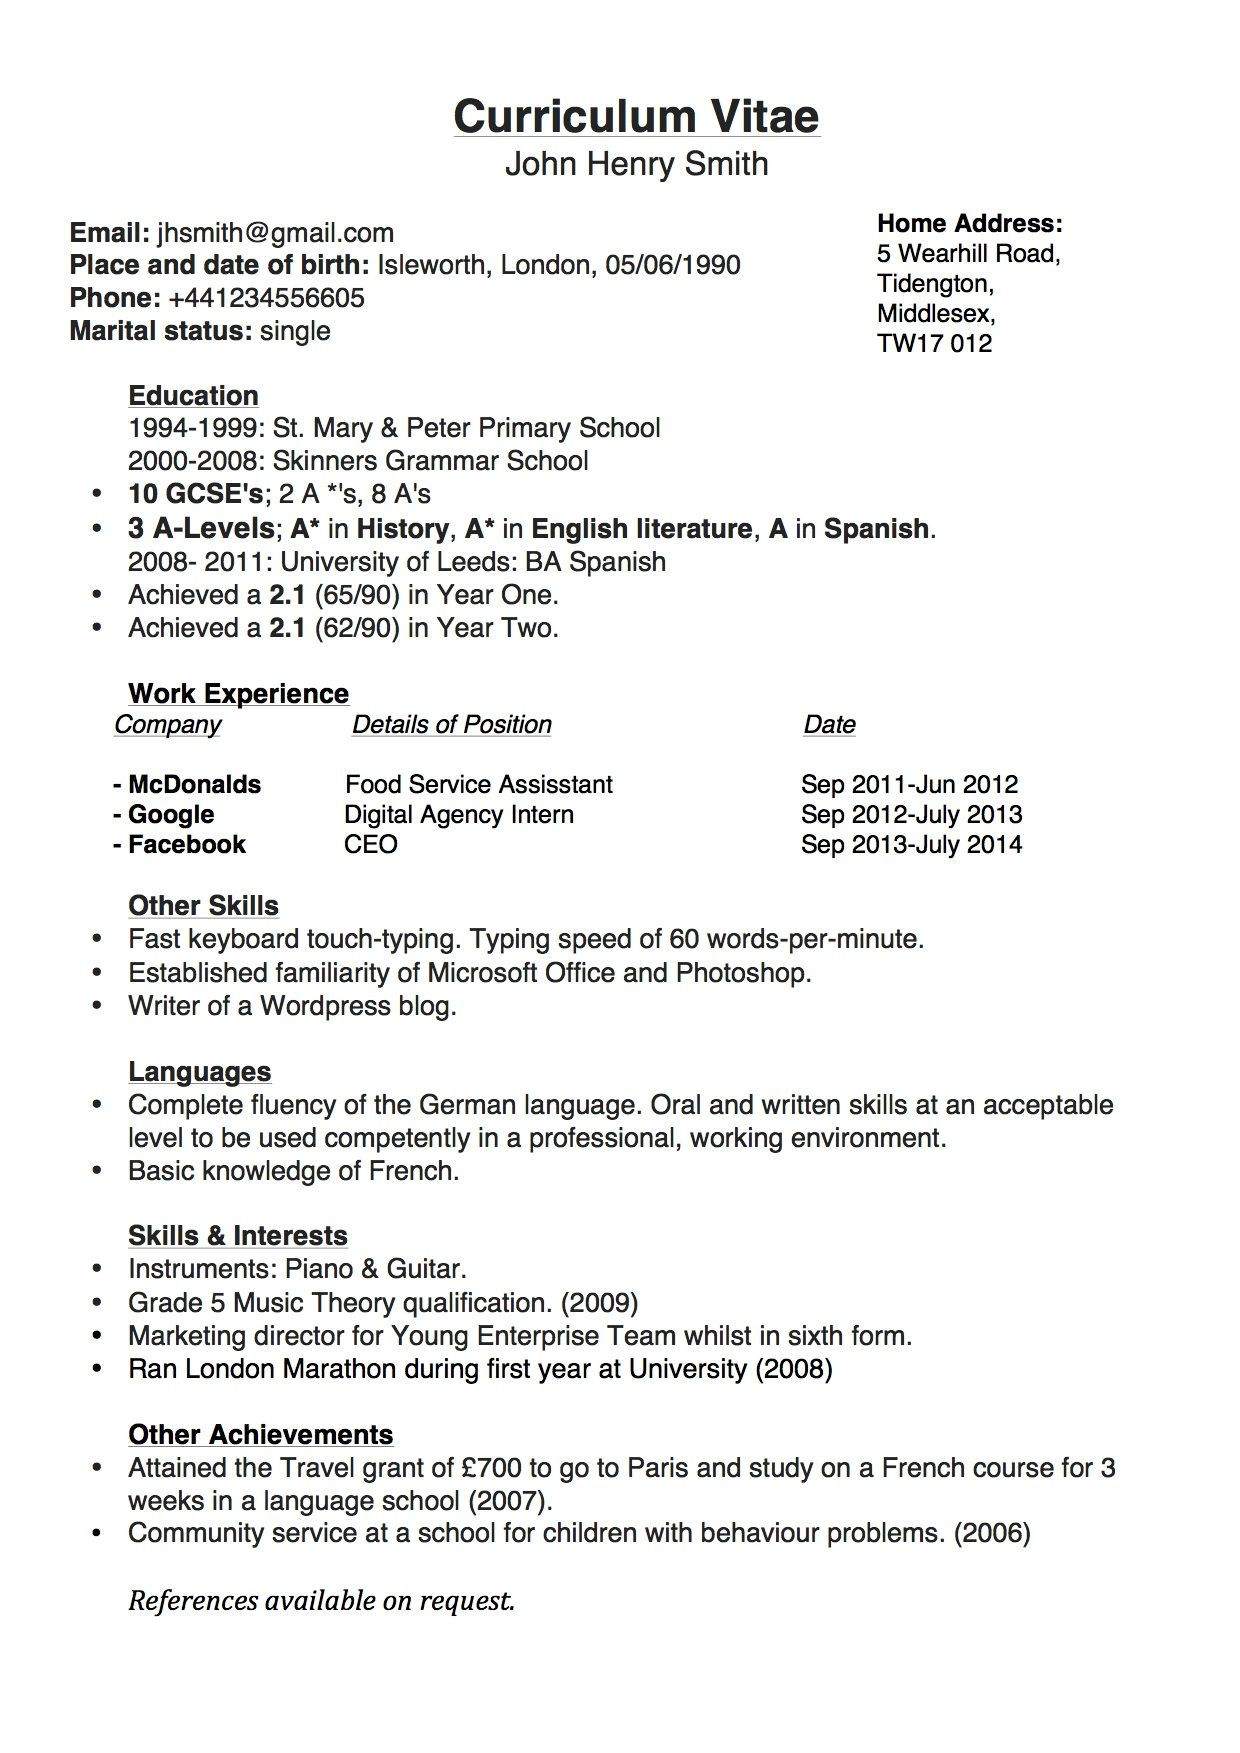 Resume Format Template Curriculum Vitae Template  Google Search  Resumes  Pinterest